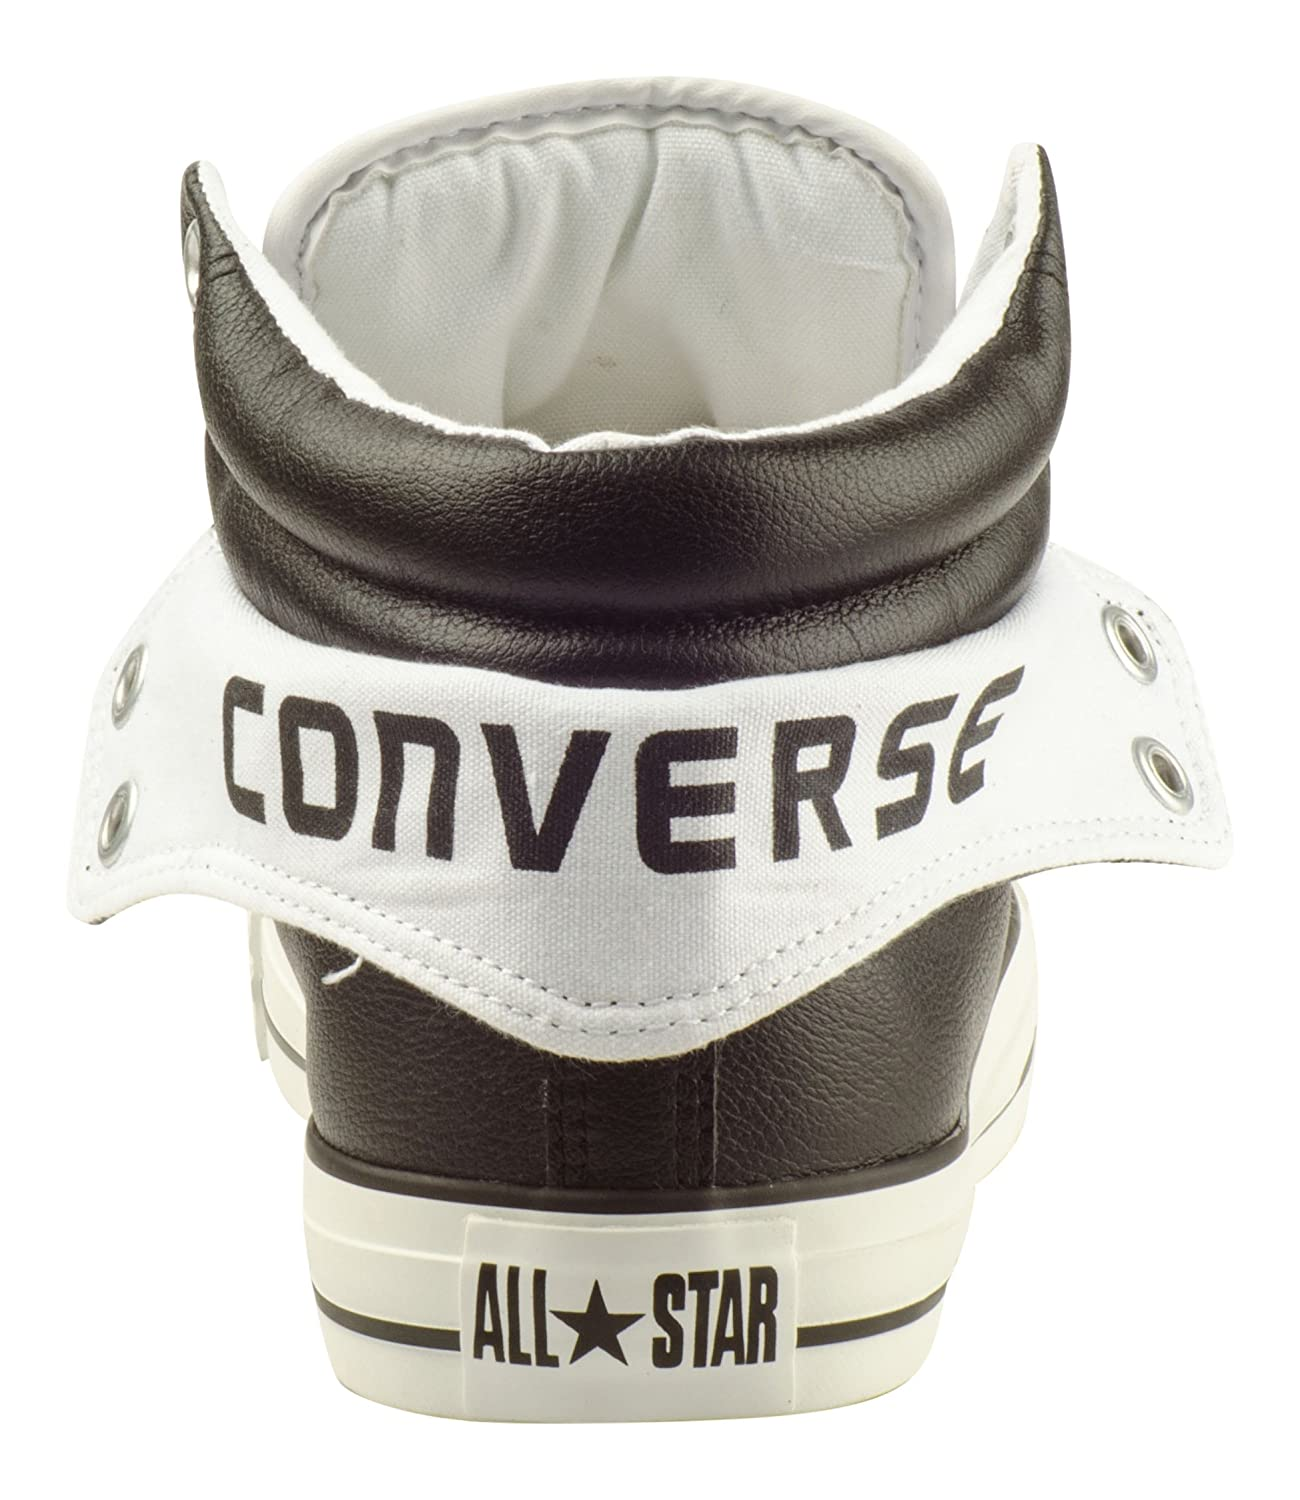 b73c5bbb7952 Converse CT Padded Collar 2 PC2 Mid - Black White - 115662 - Unisex  Trainers Shoes Womens 9.5 Mens EU 41- UK 7.5  Amazon.co.uk  Shoes   Bags